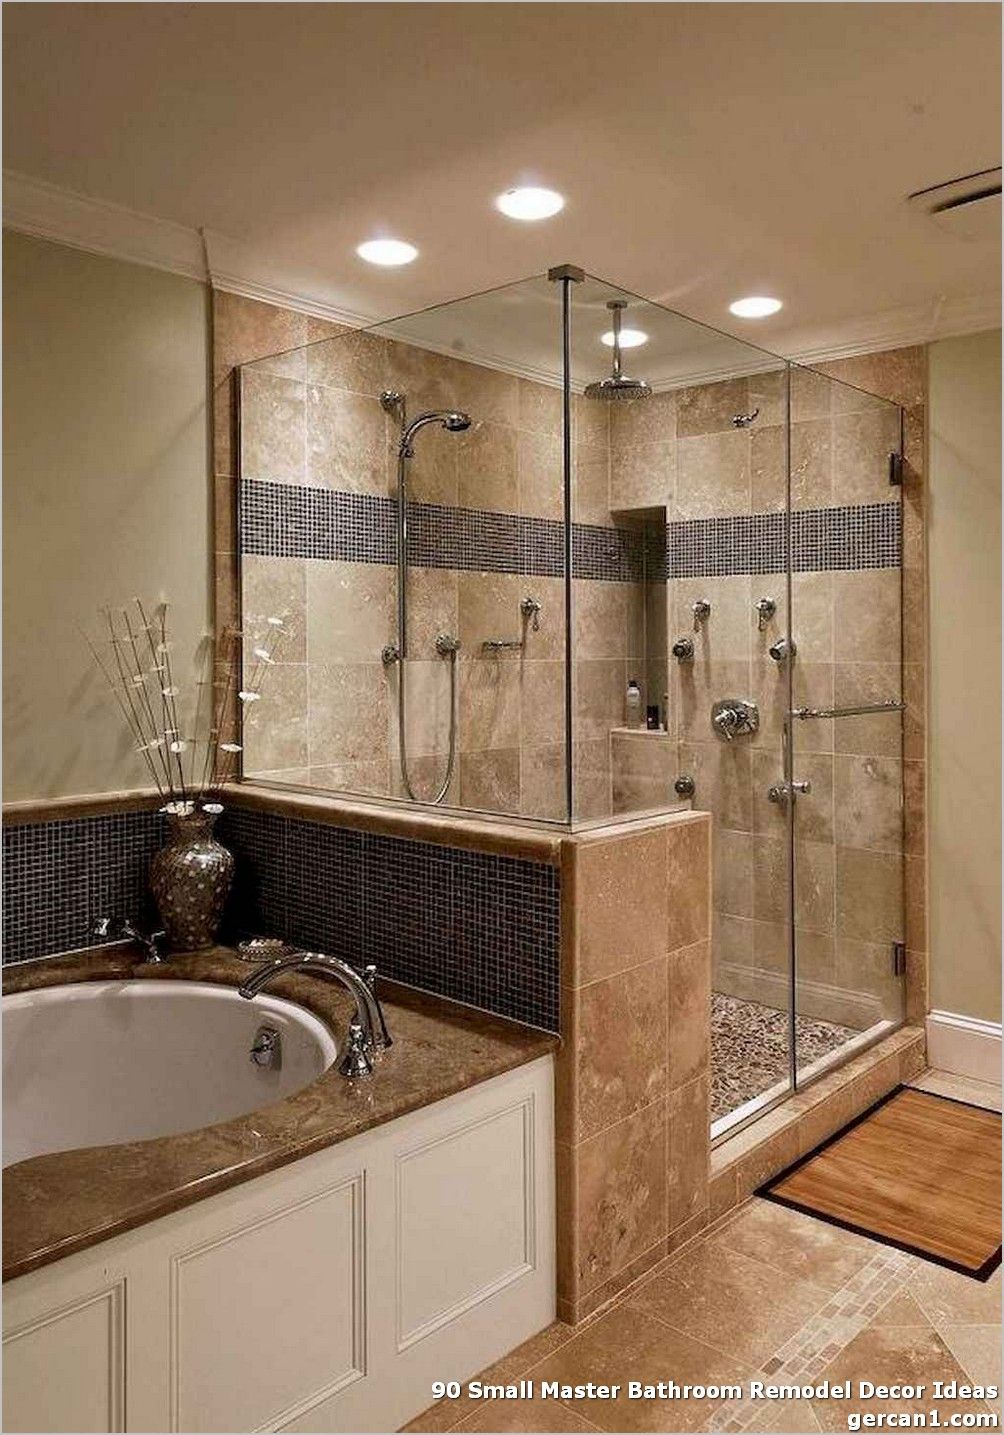 90 Small Master Bathroom Remodel Decor Ideas Small Rest Room